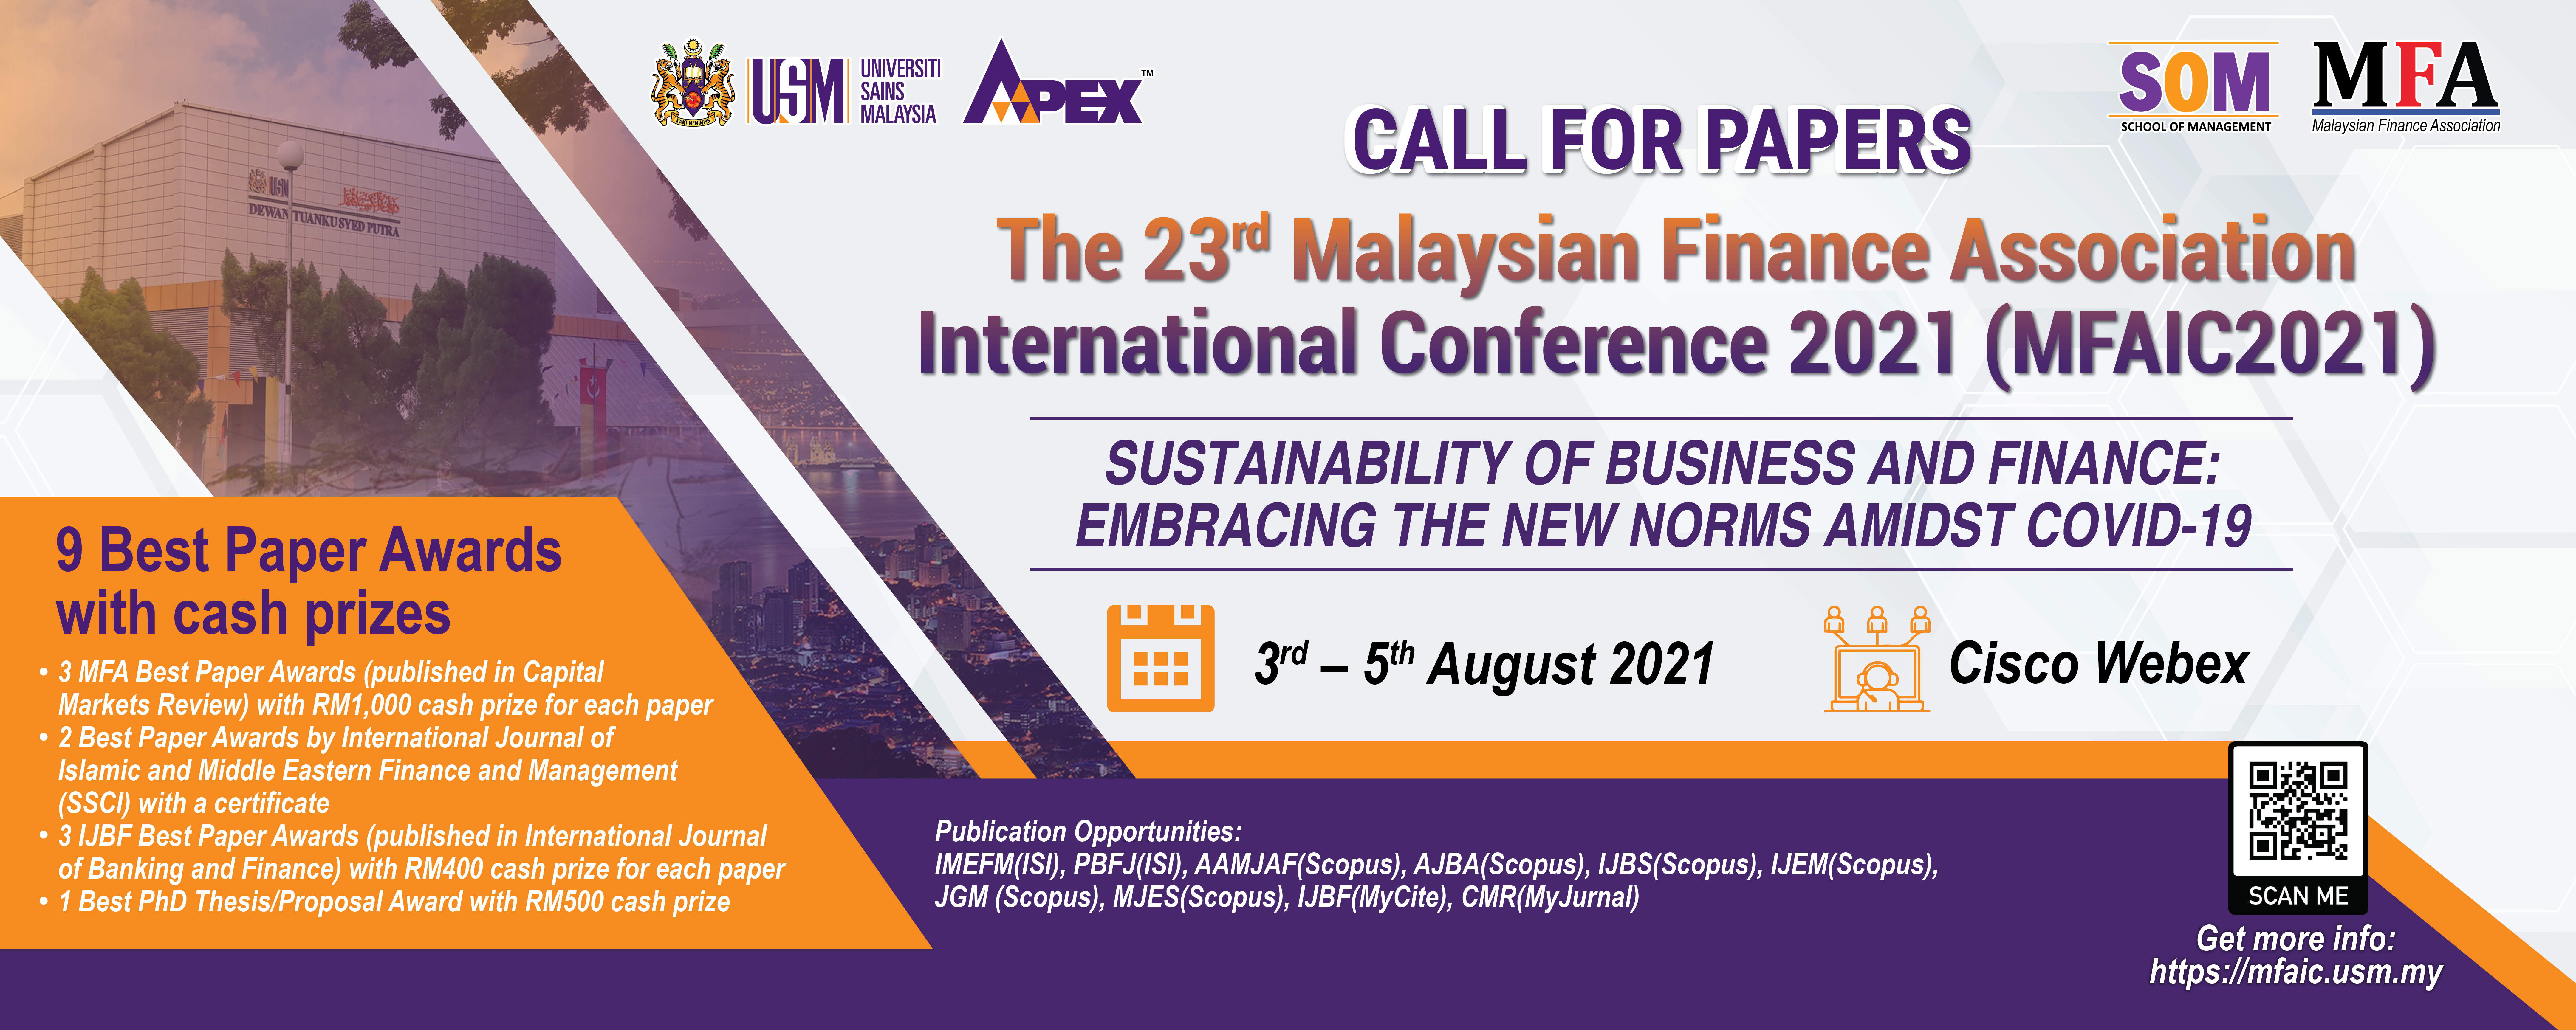 Banner 4x10ft_Call for Papers MFAIC 2021-01.jpg